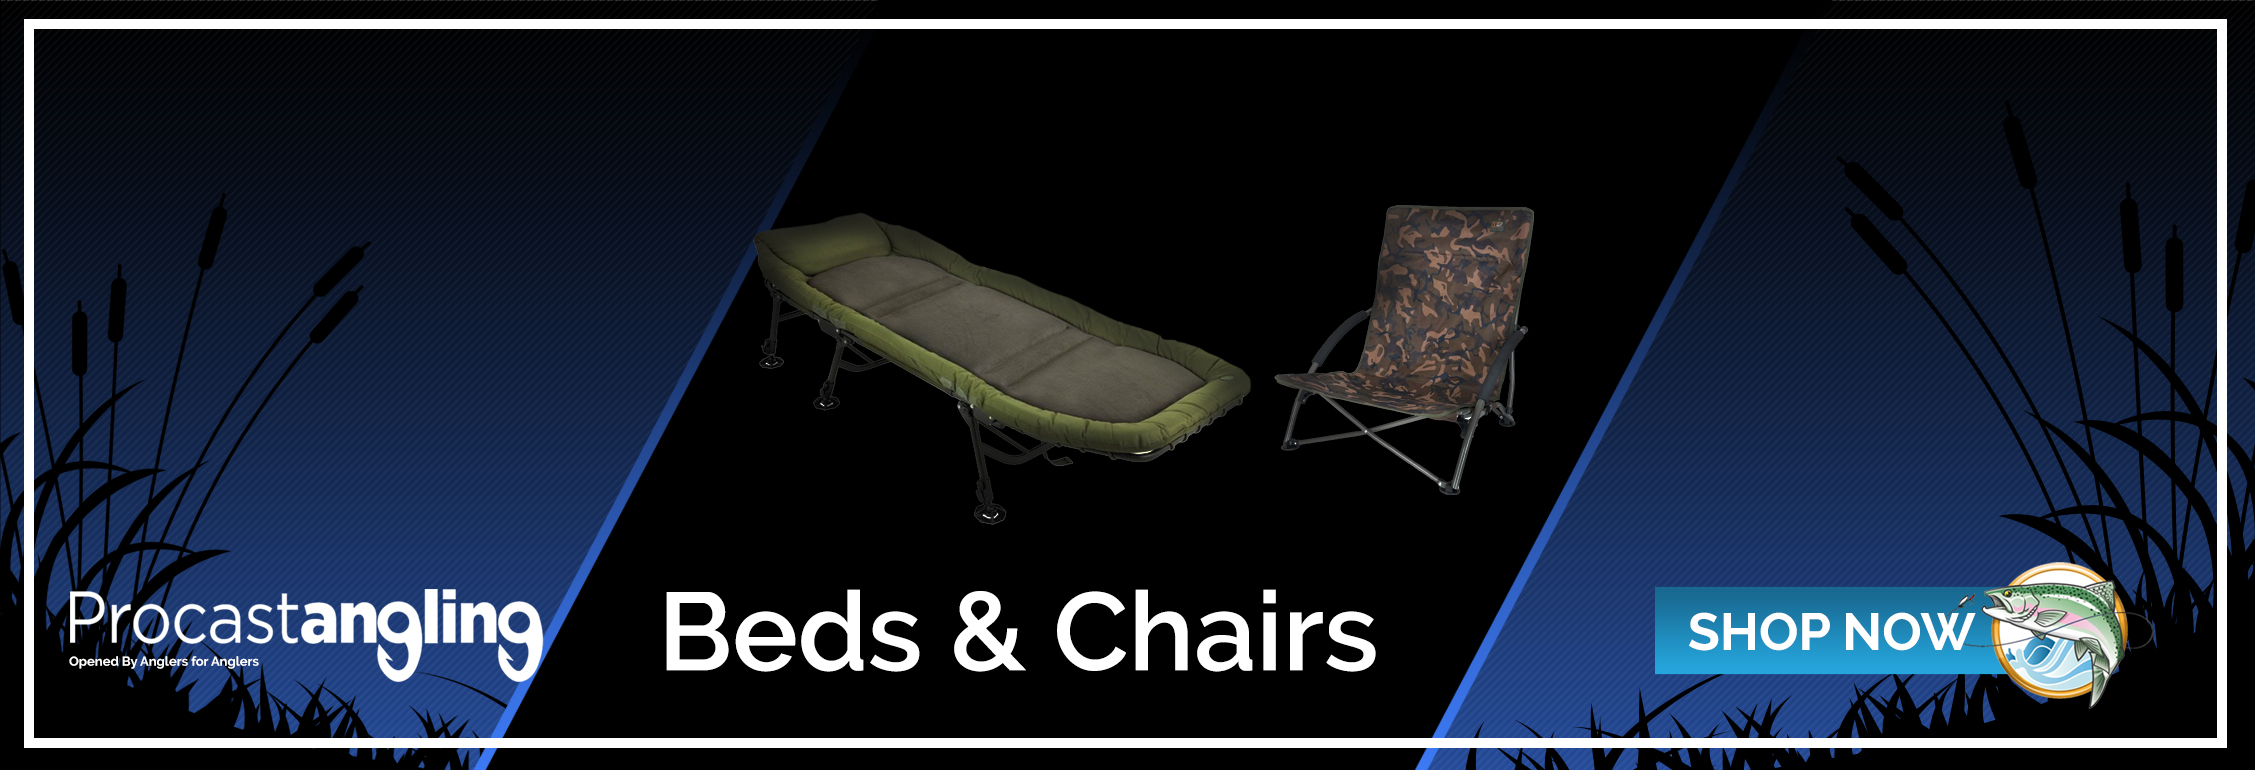 BEDS & CHAIRS